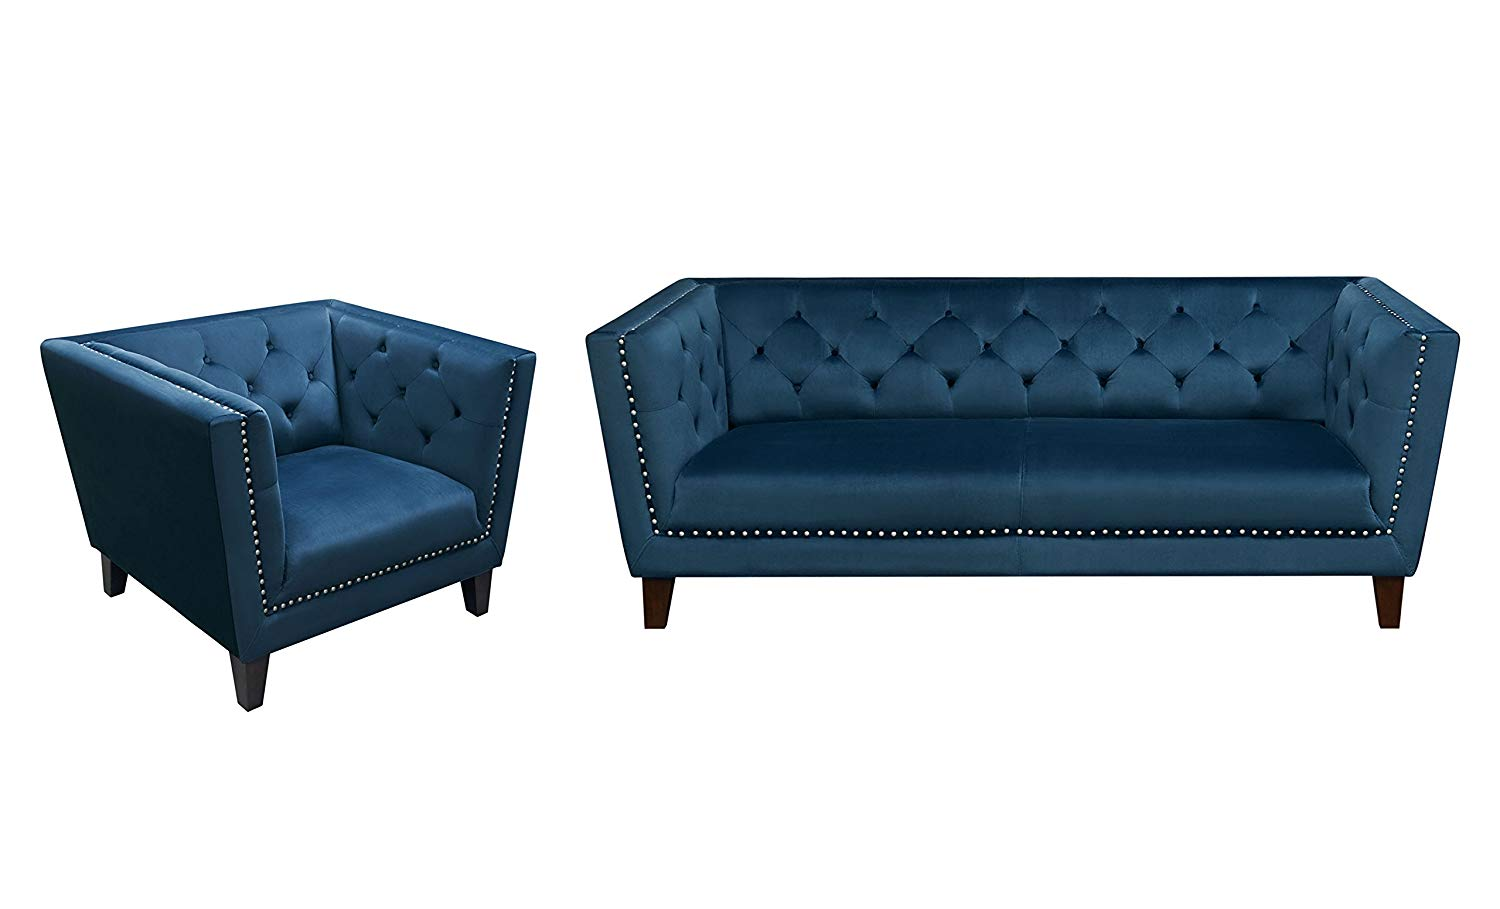 Charming Get Quotations · Grand Tufted Back Sofa U0026 Chair 2PC Set With Nail Head  Accent In Blue Velvet ,